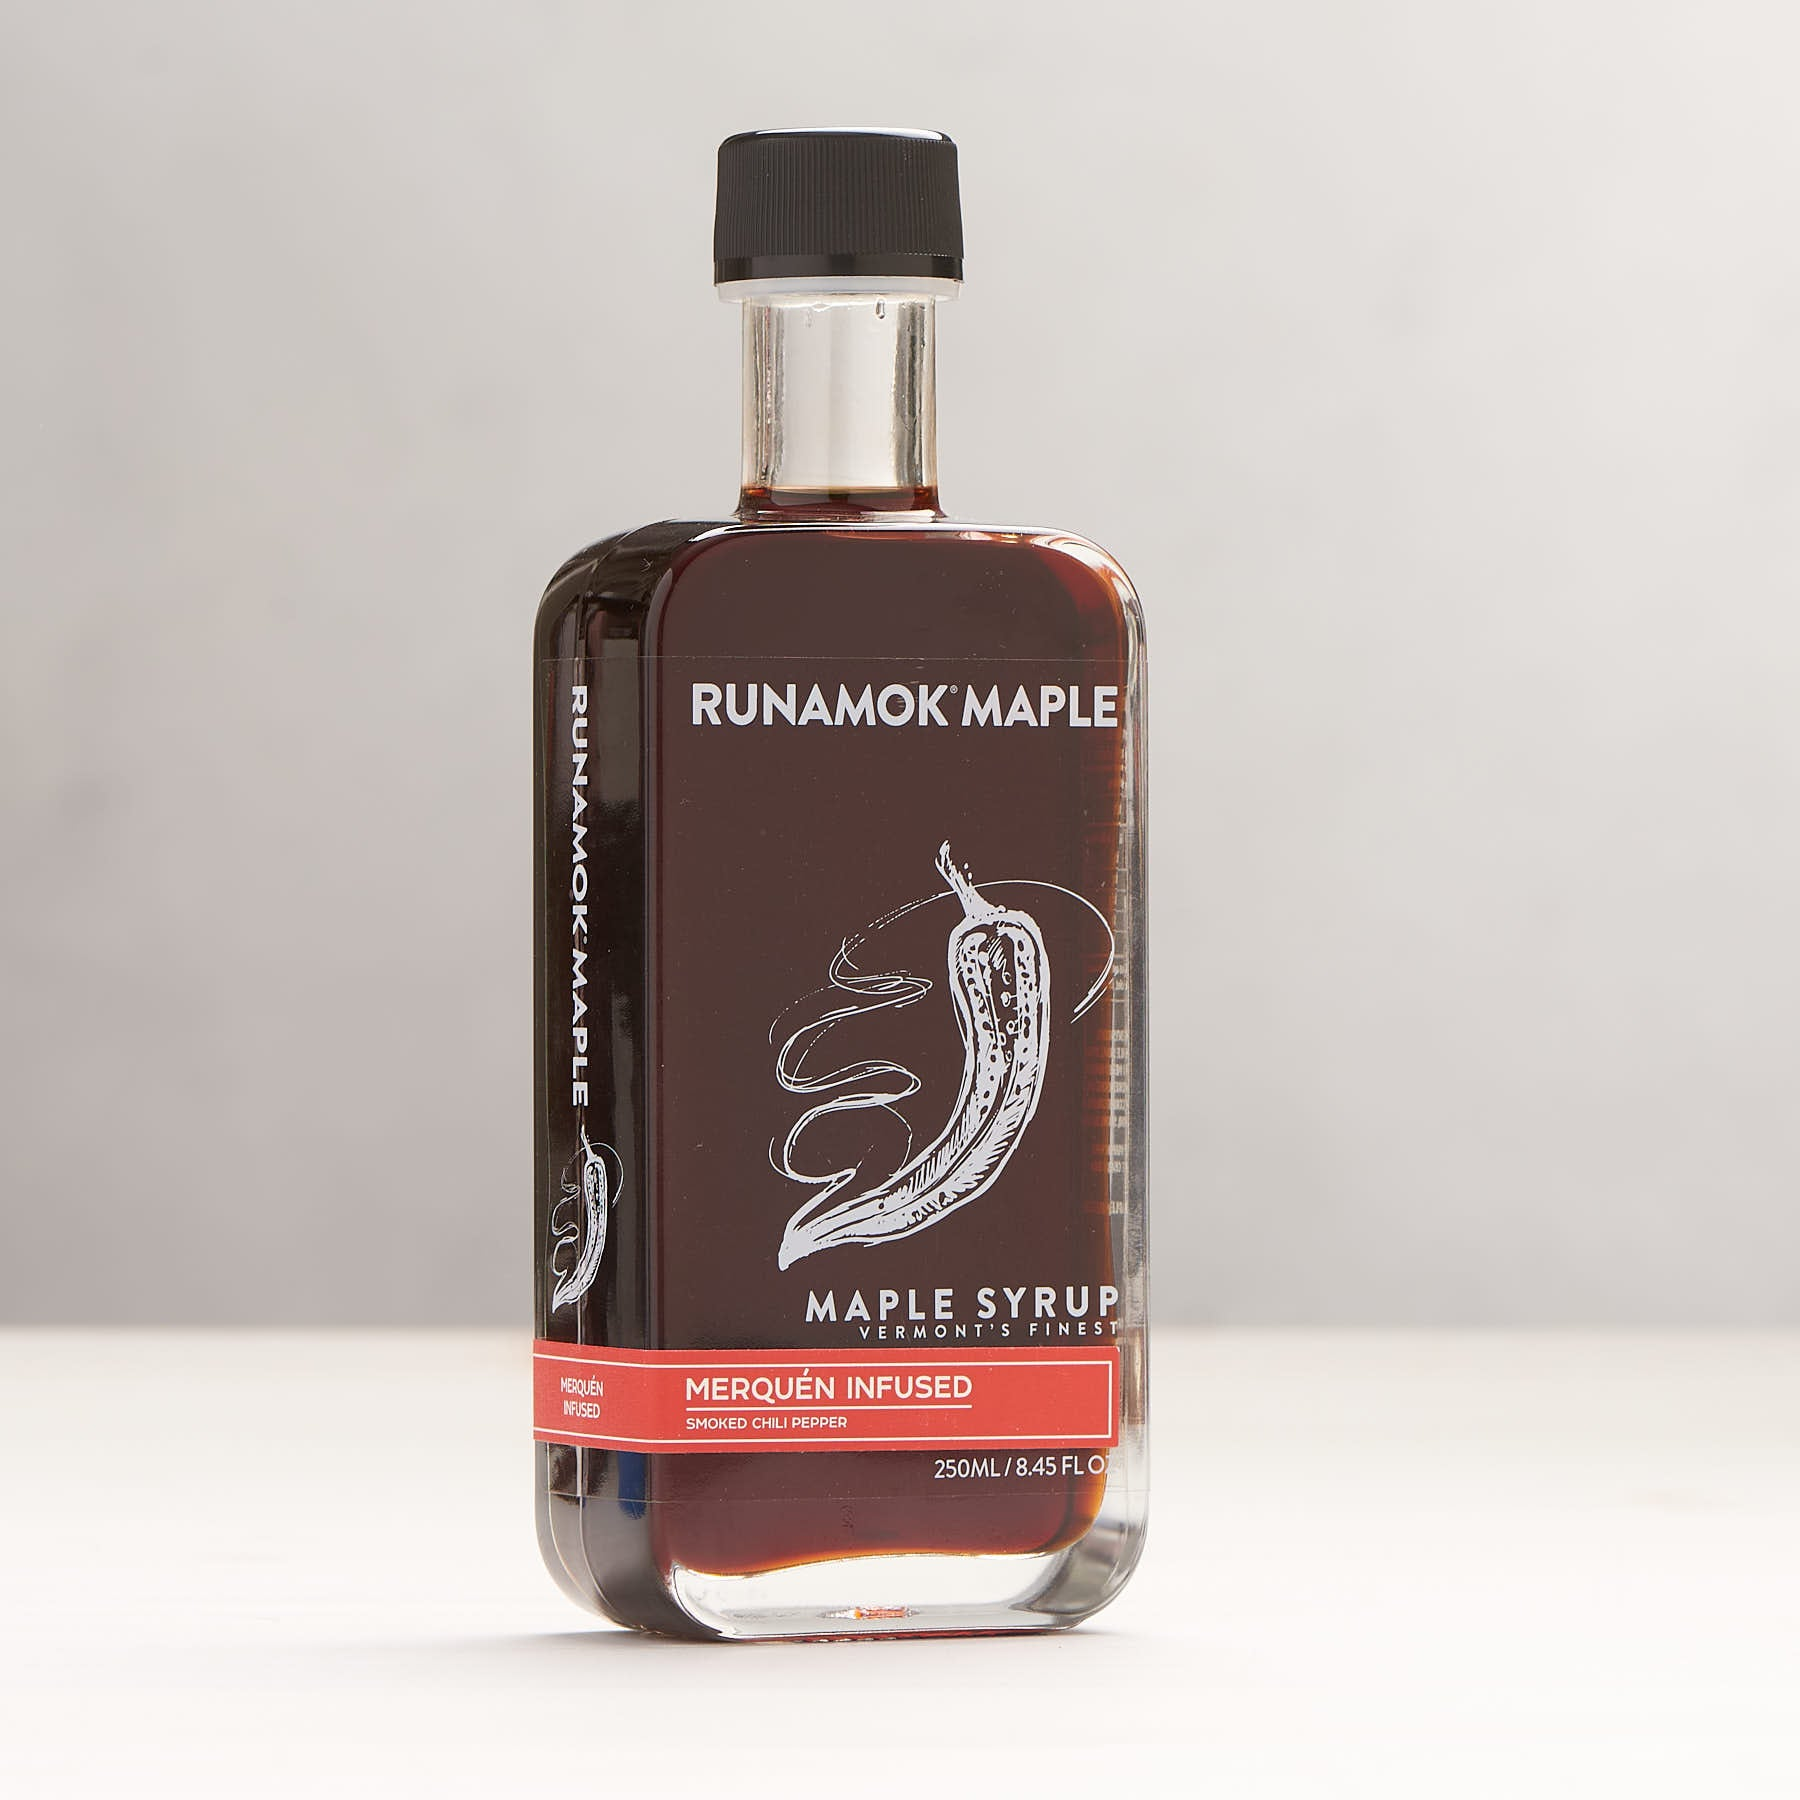 Runamok Maple Merquén Smoked Chili Pepper Infused Maple Syrup